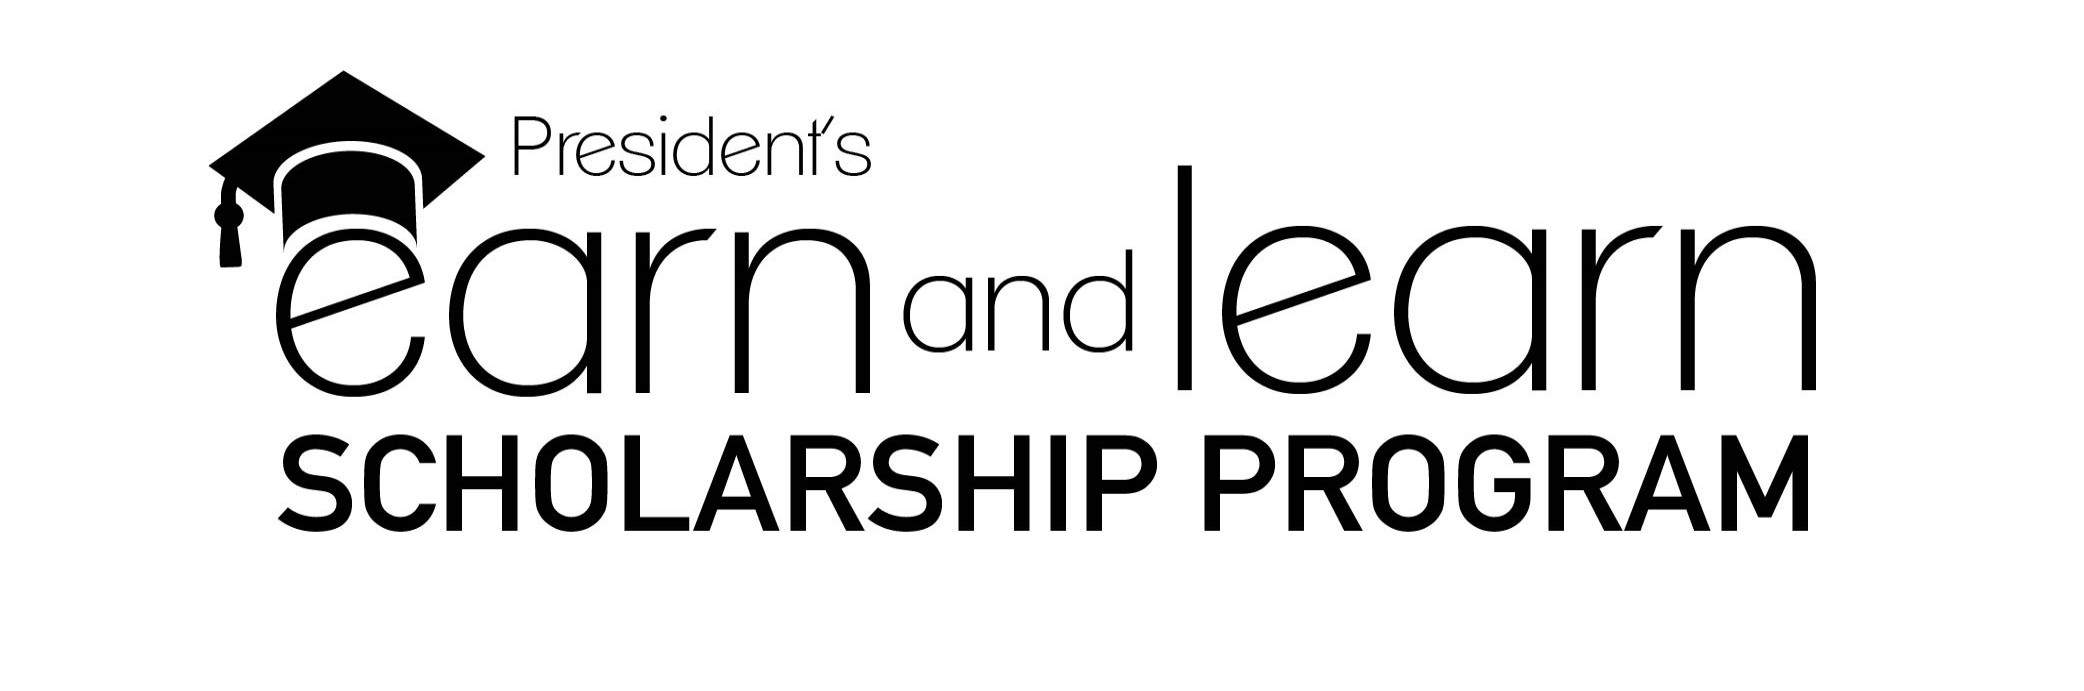 President's Earn and Learn Scholarship Program